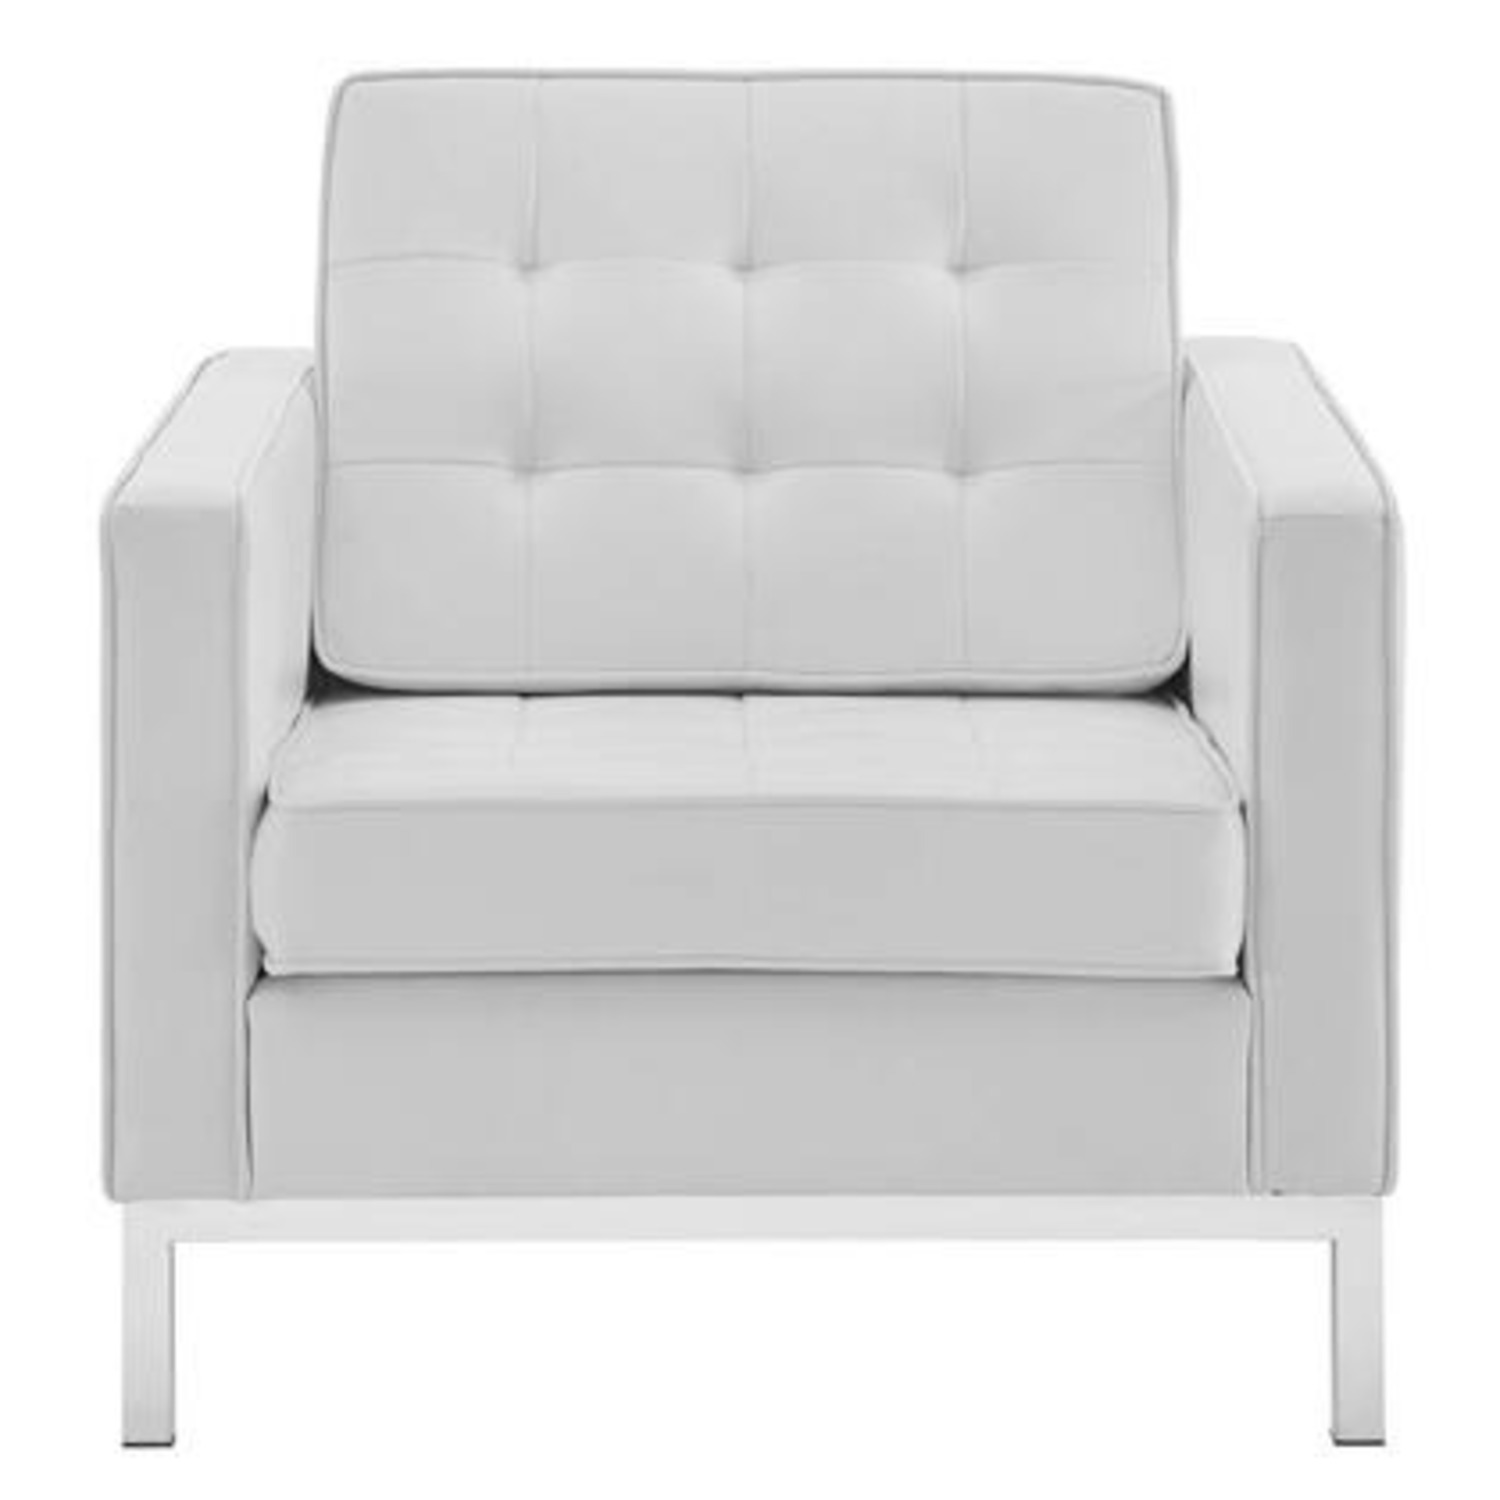 Armchair In White Faux Leather W/ Silver Legs - image-1